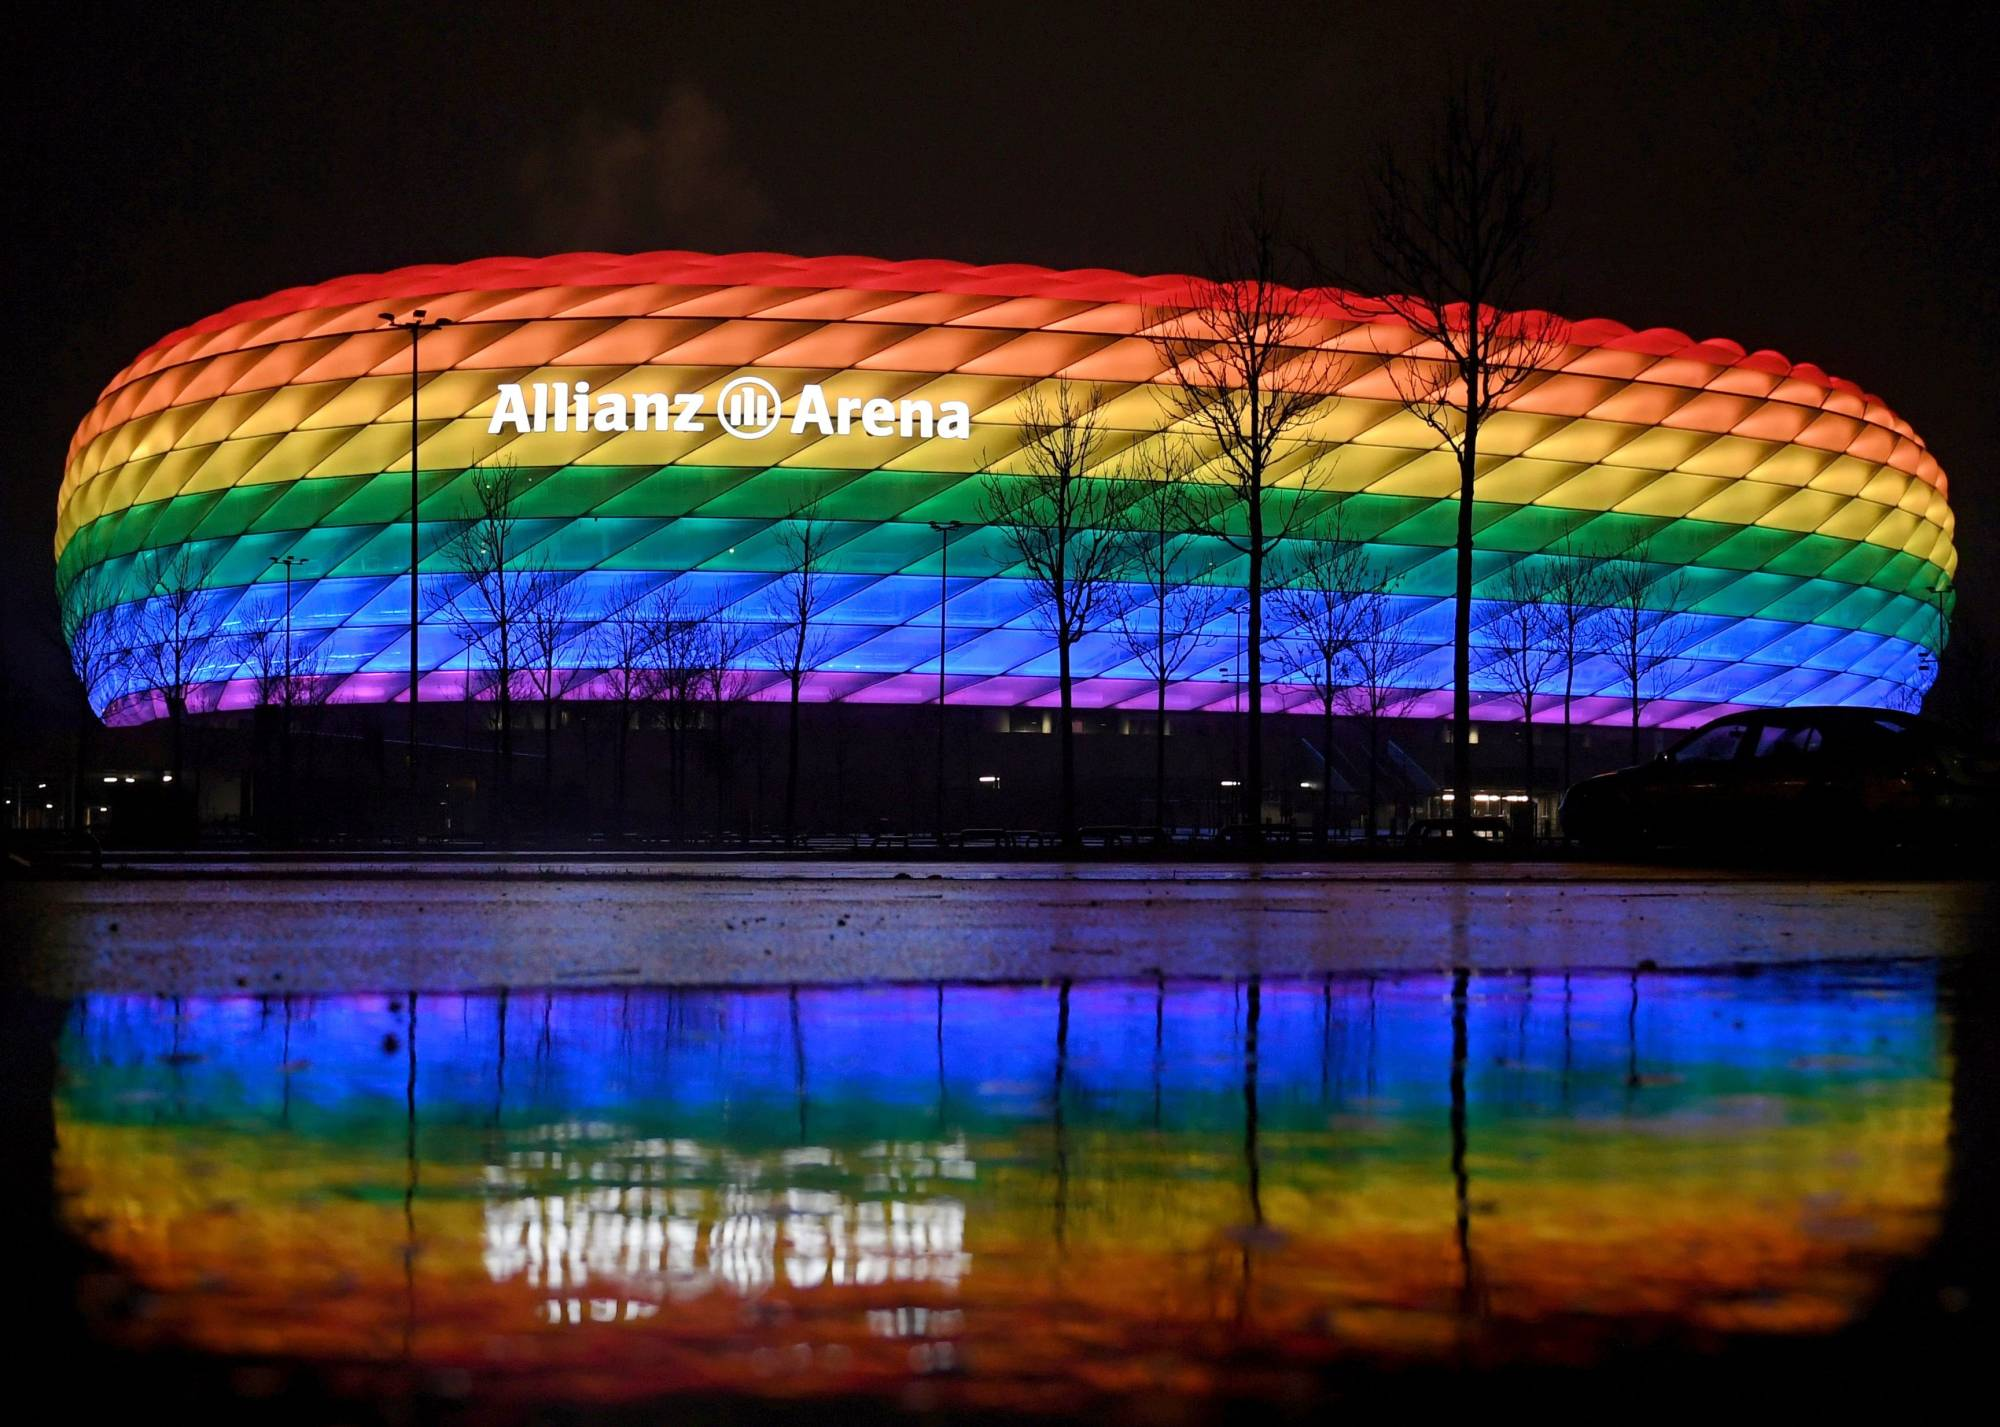 German officials had applied to light up Munich's Allianz Arena in rainbow colors before the team's Euro 2020 match against Hungary. | REUTERS